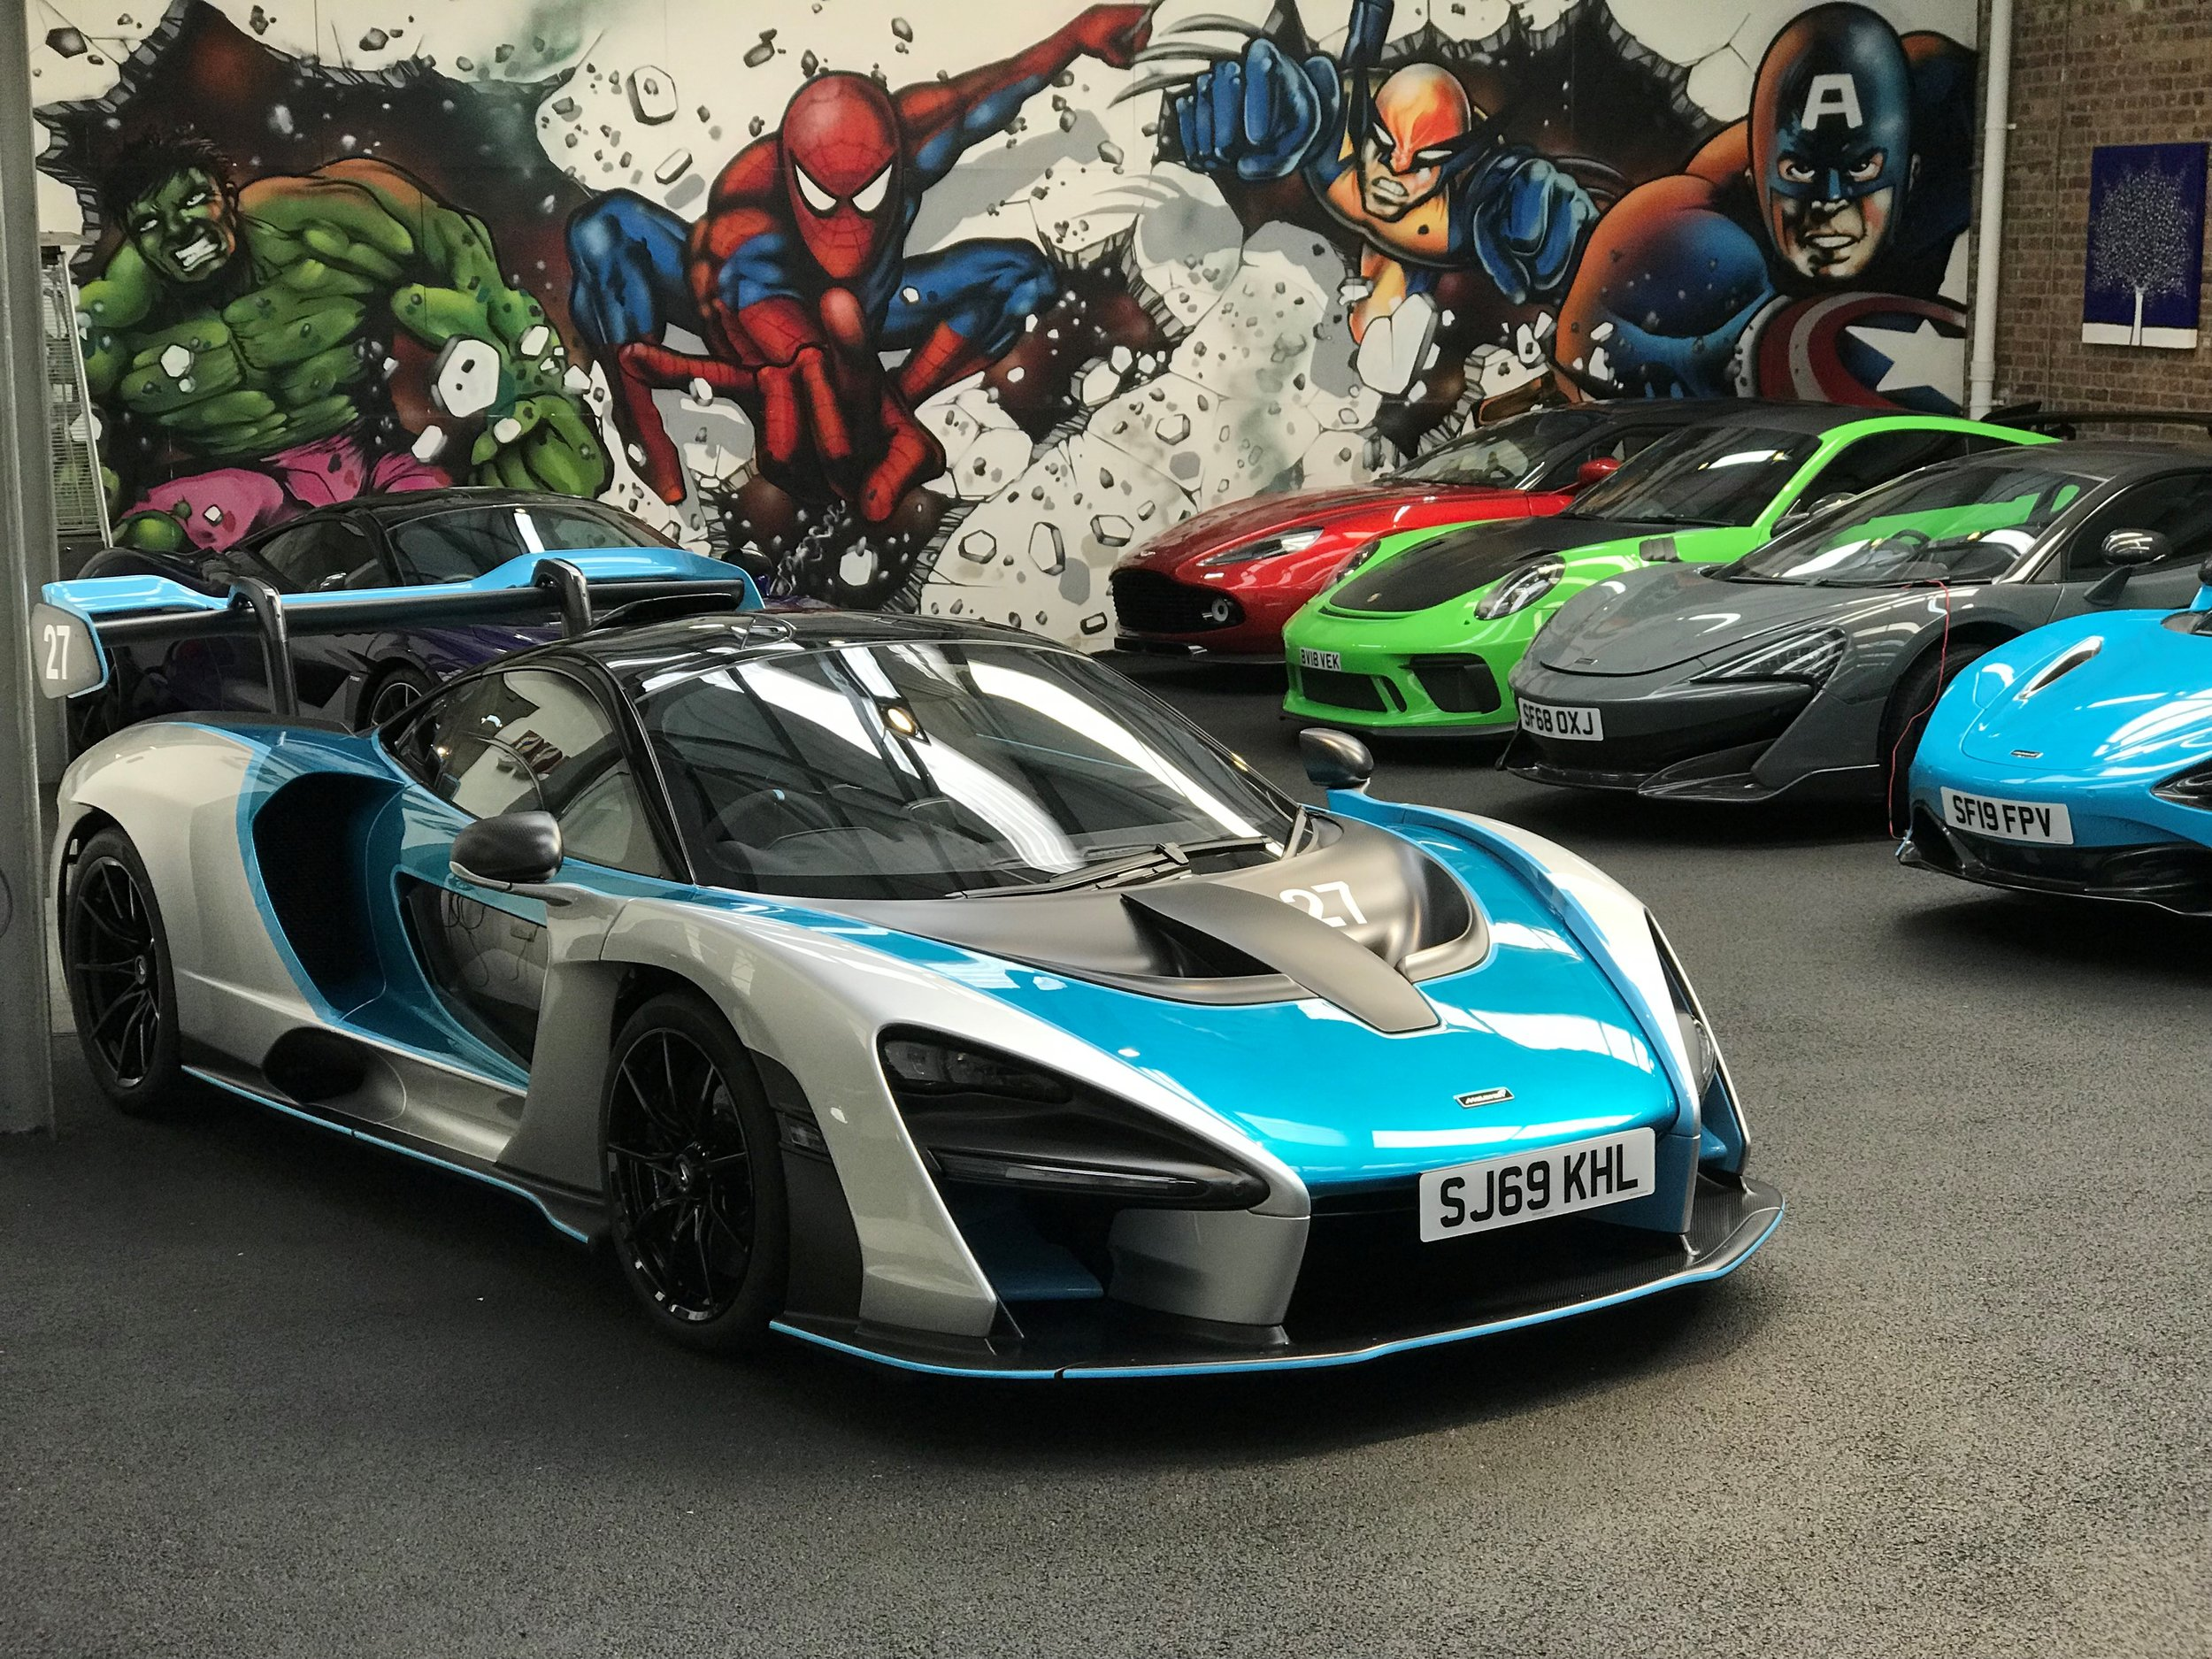 The world's only McLaren Senna available for private hire arrives at Auto Vivendi in London